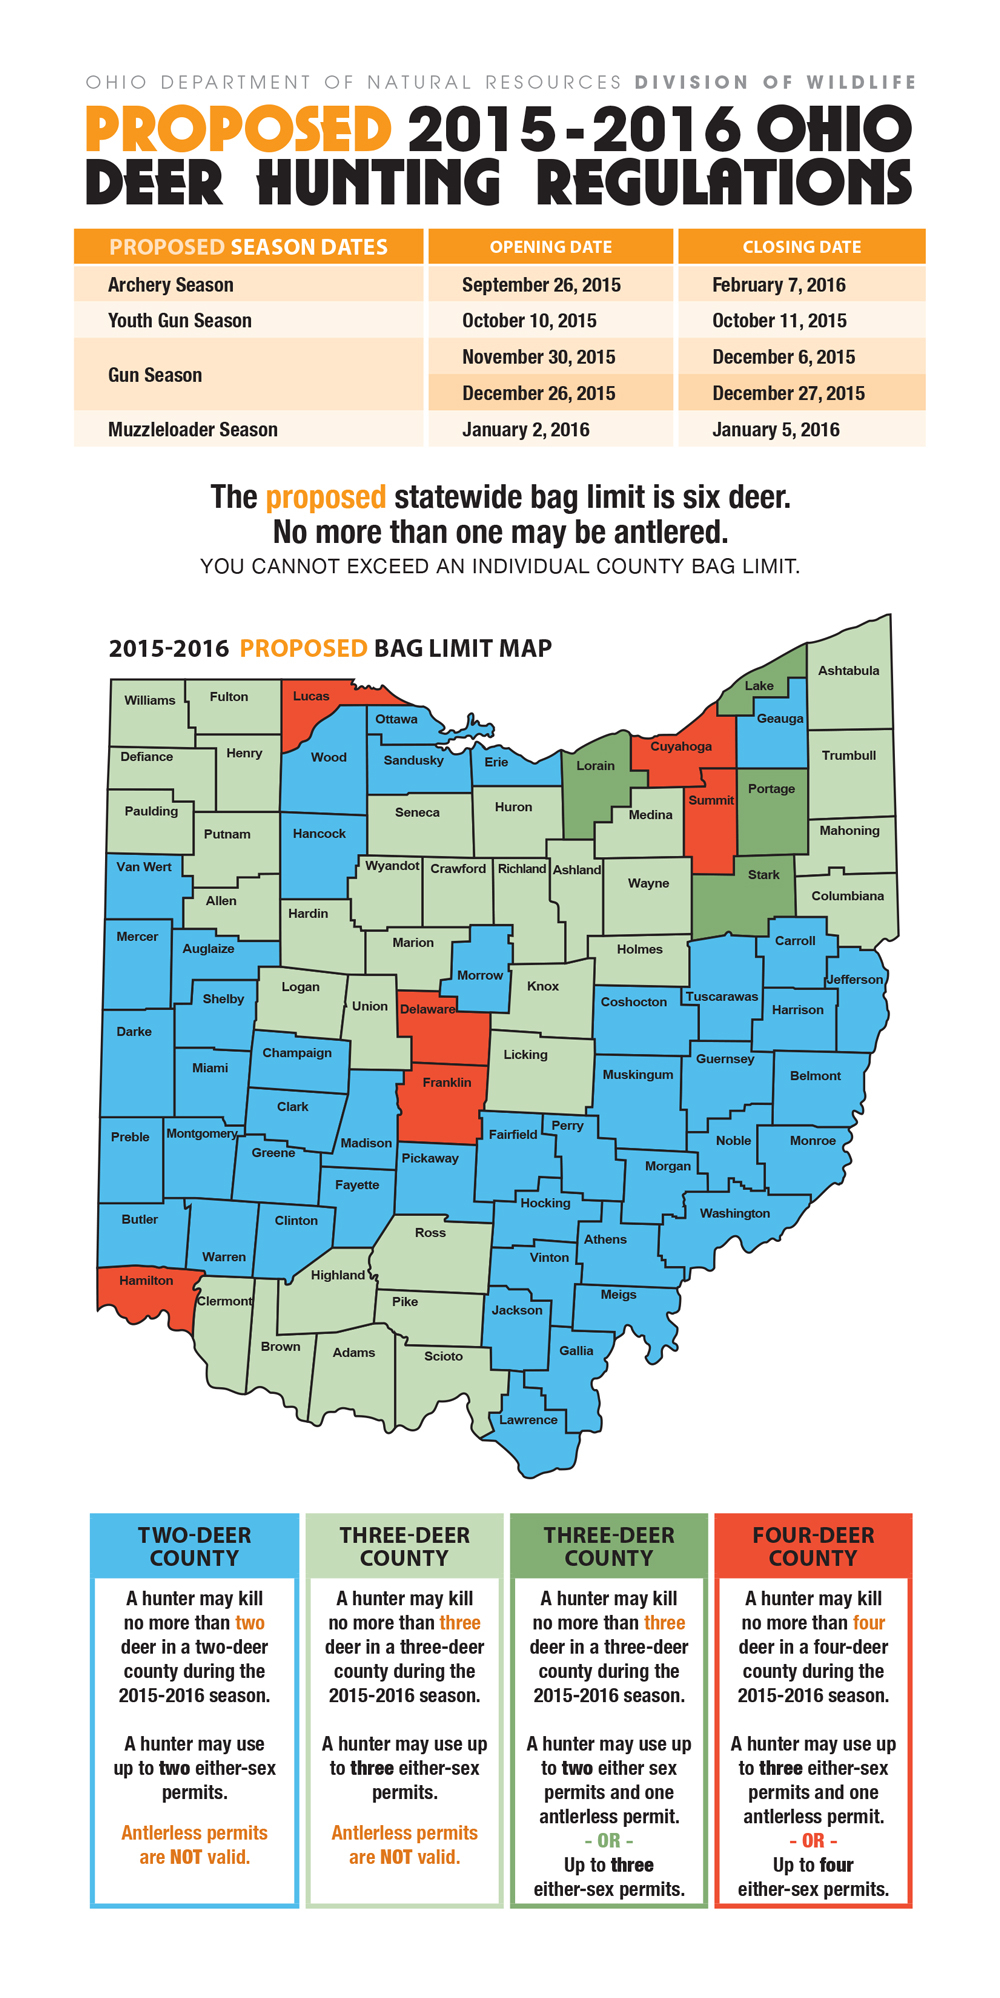 Reduced Bag Limits Part Of Proposed Changes To Ohio Deer